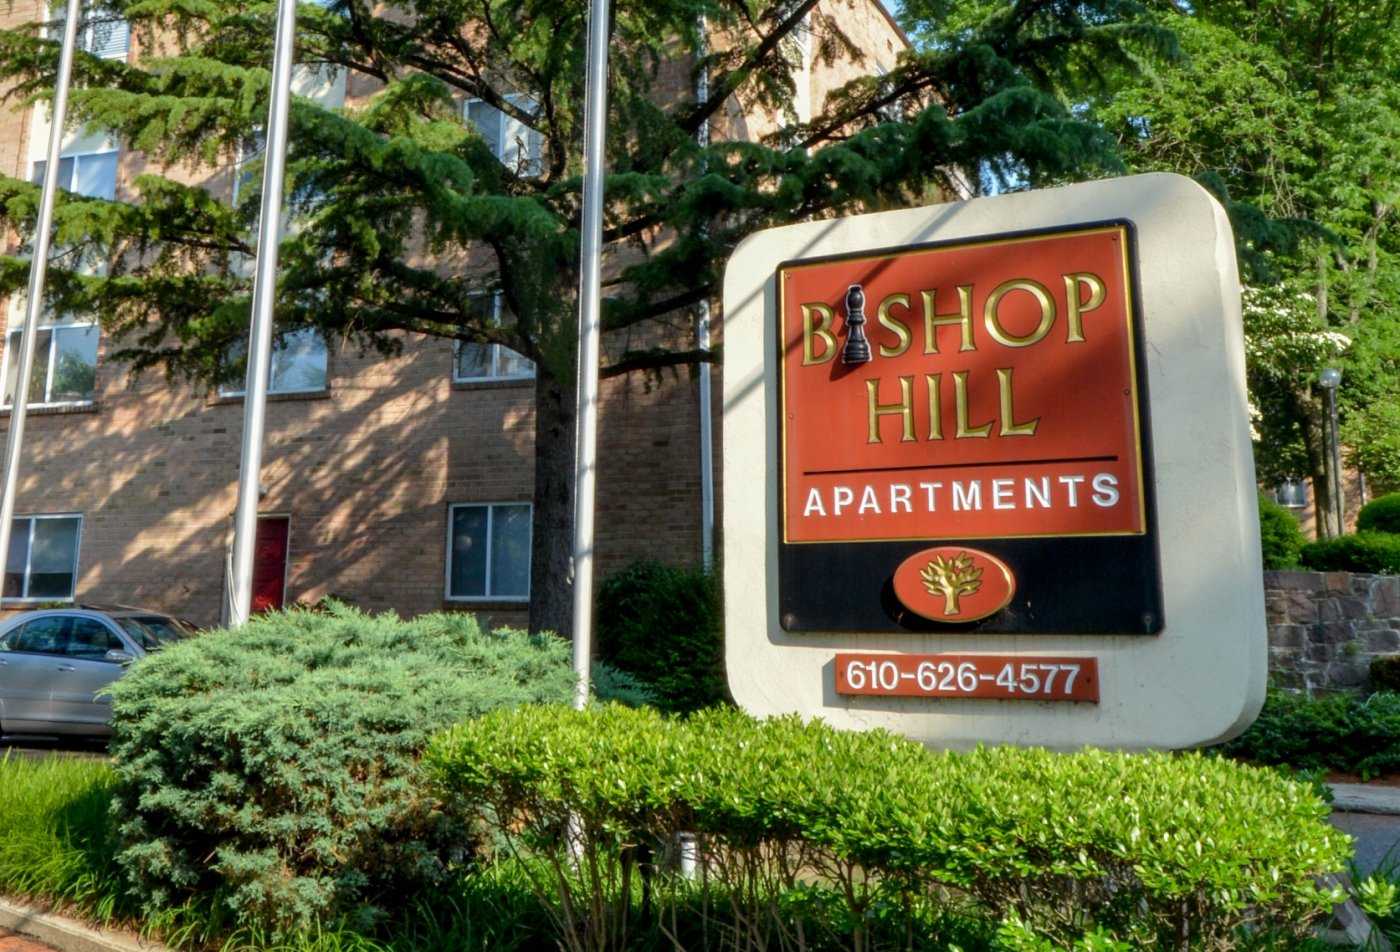 Bishop Hill Apartments